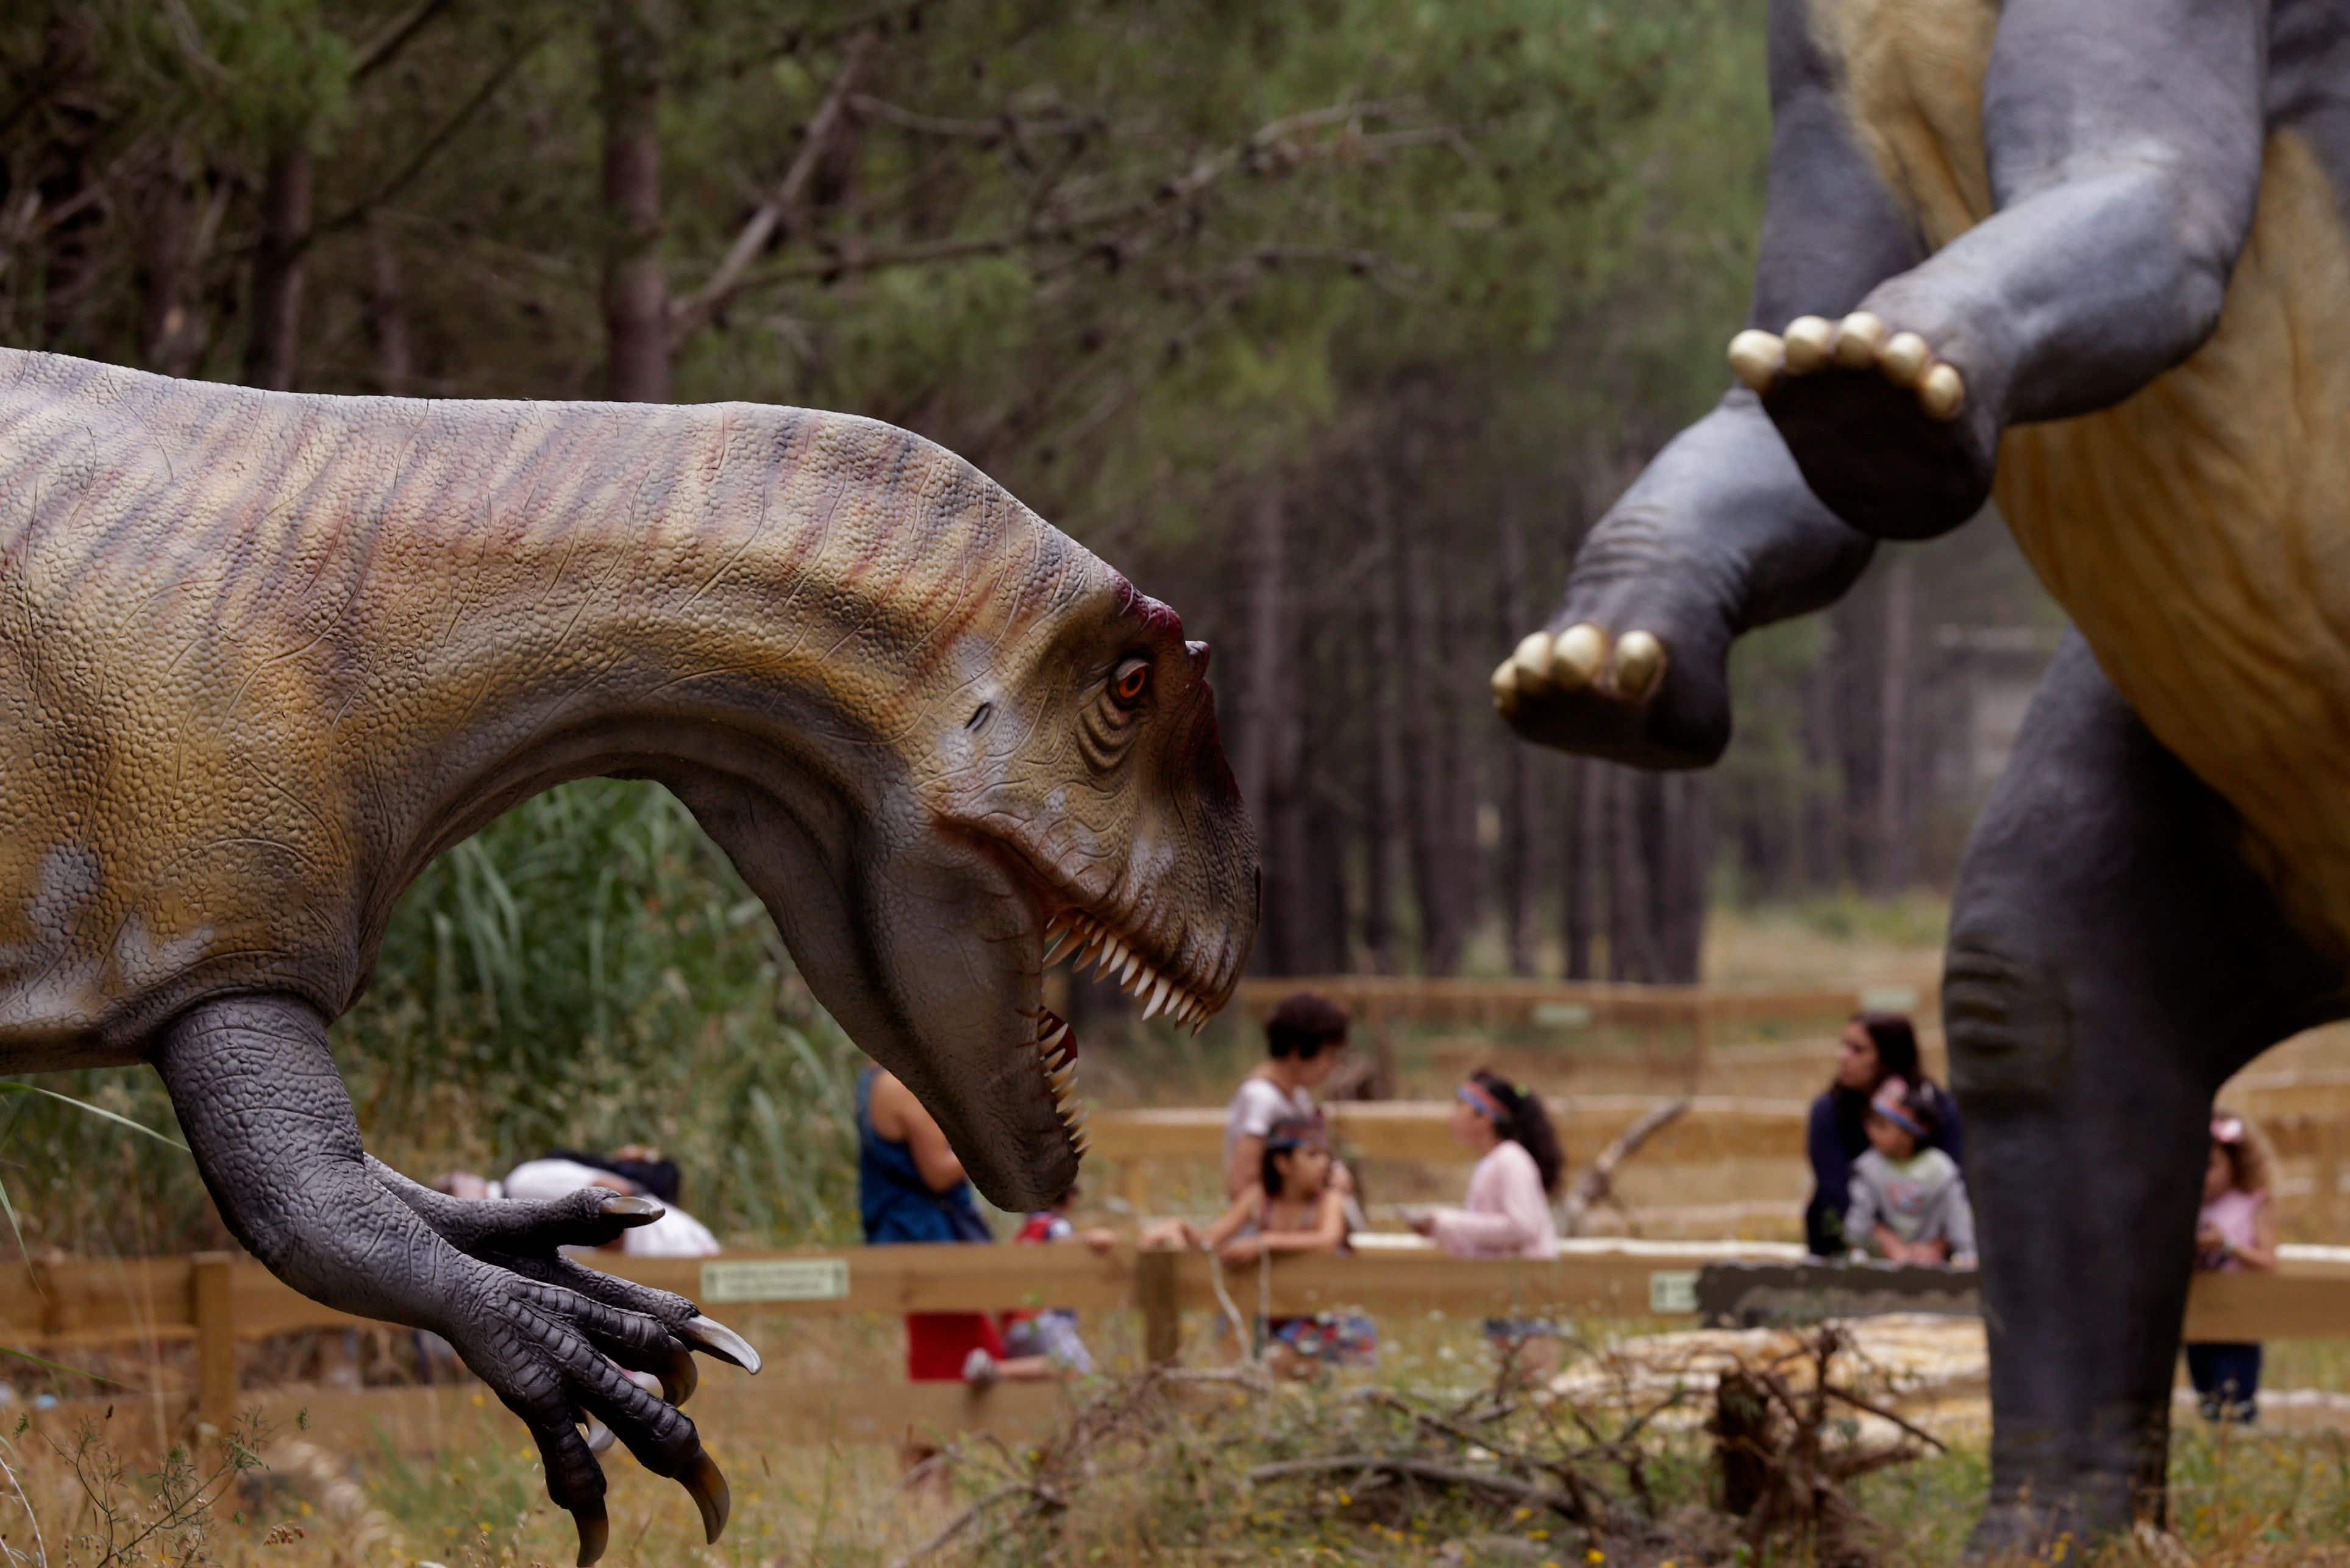 If you're looking for the real Jurassic Park, you might want to try Portugal